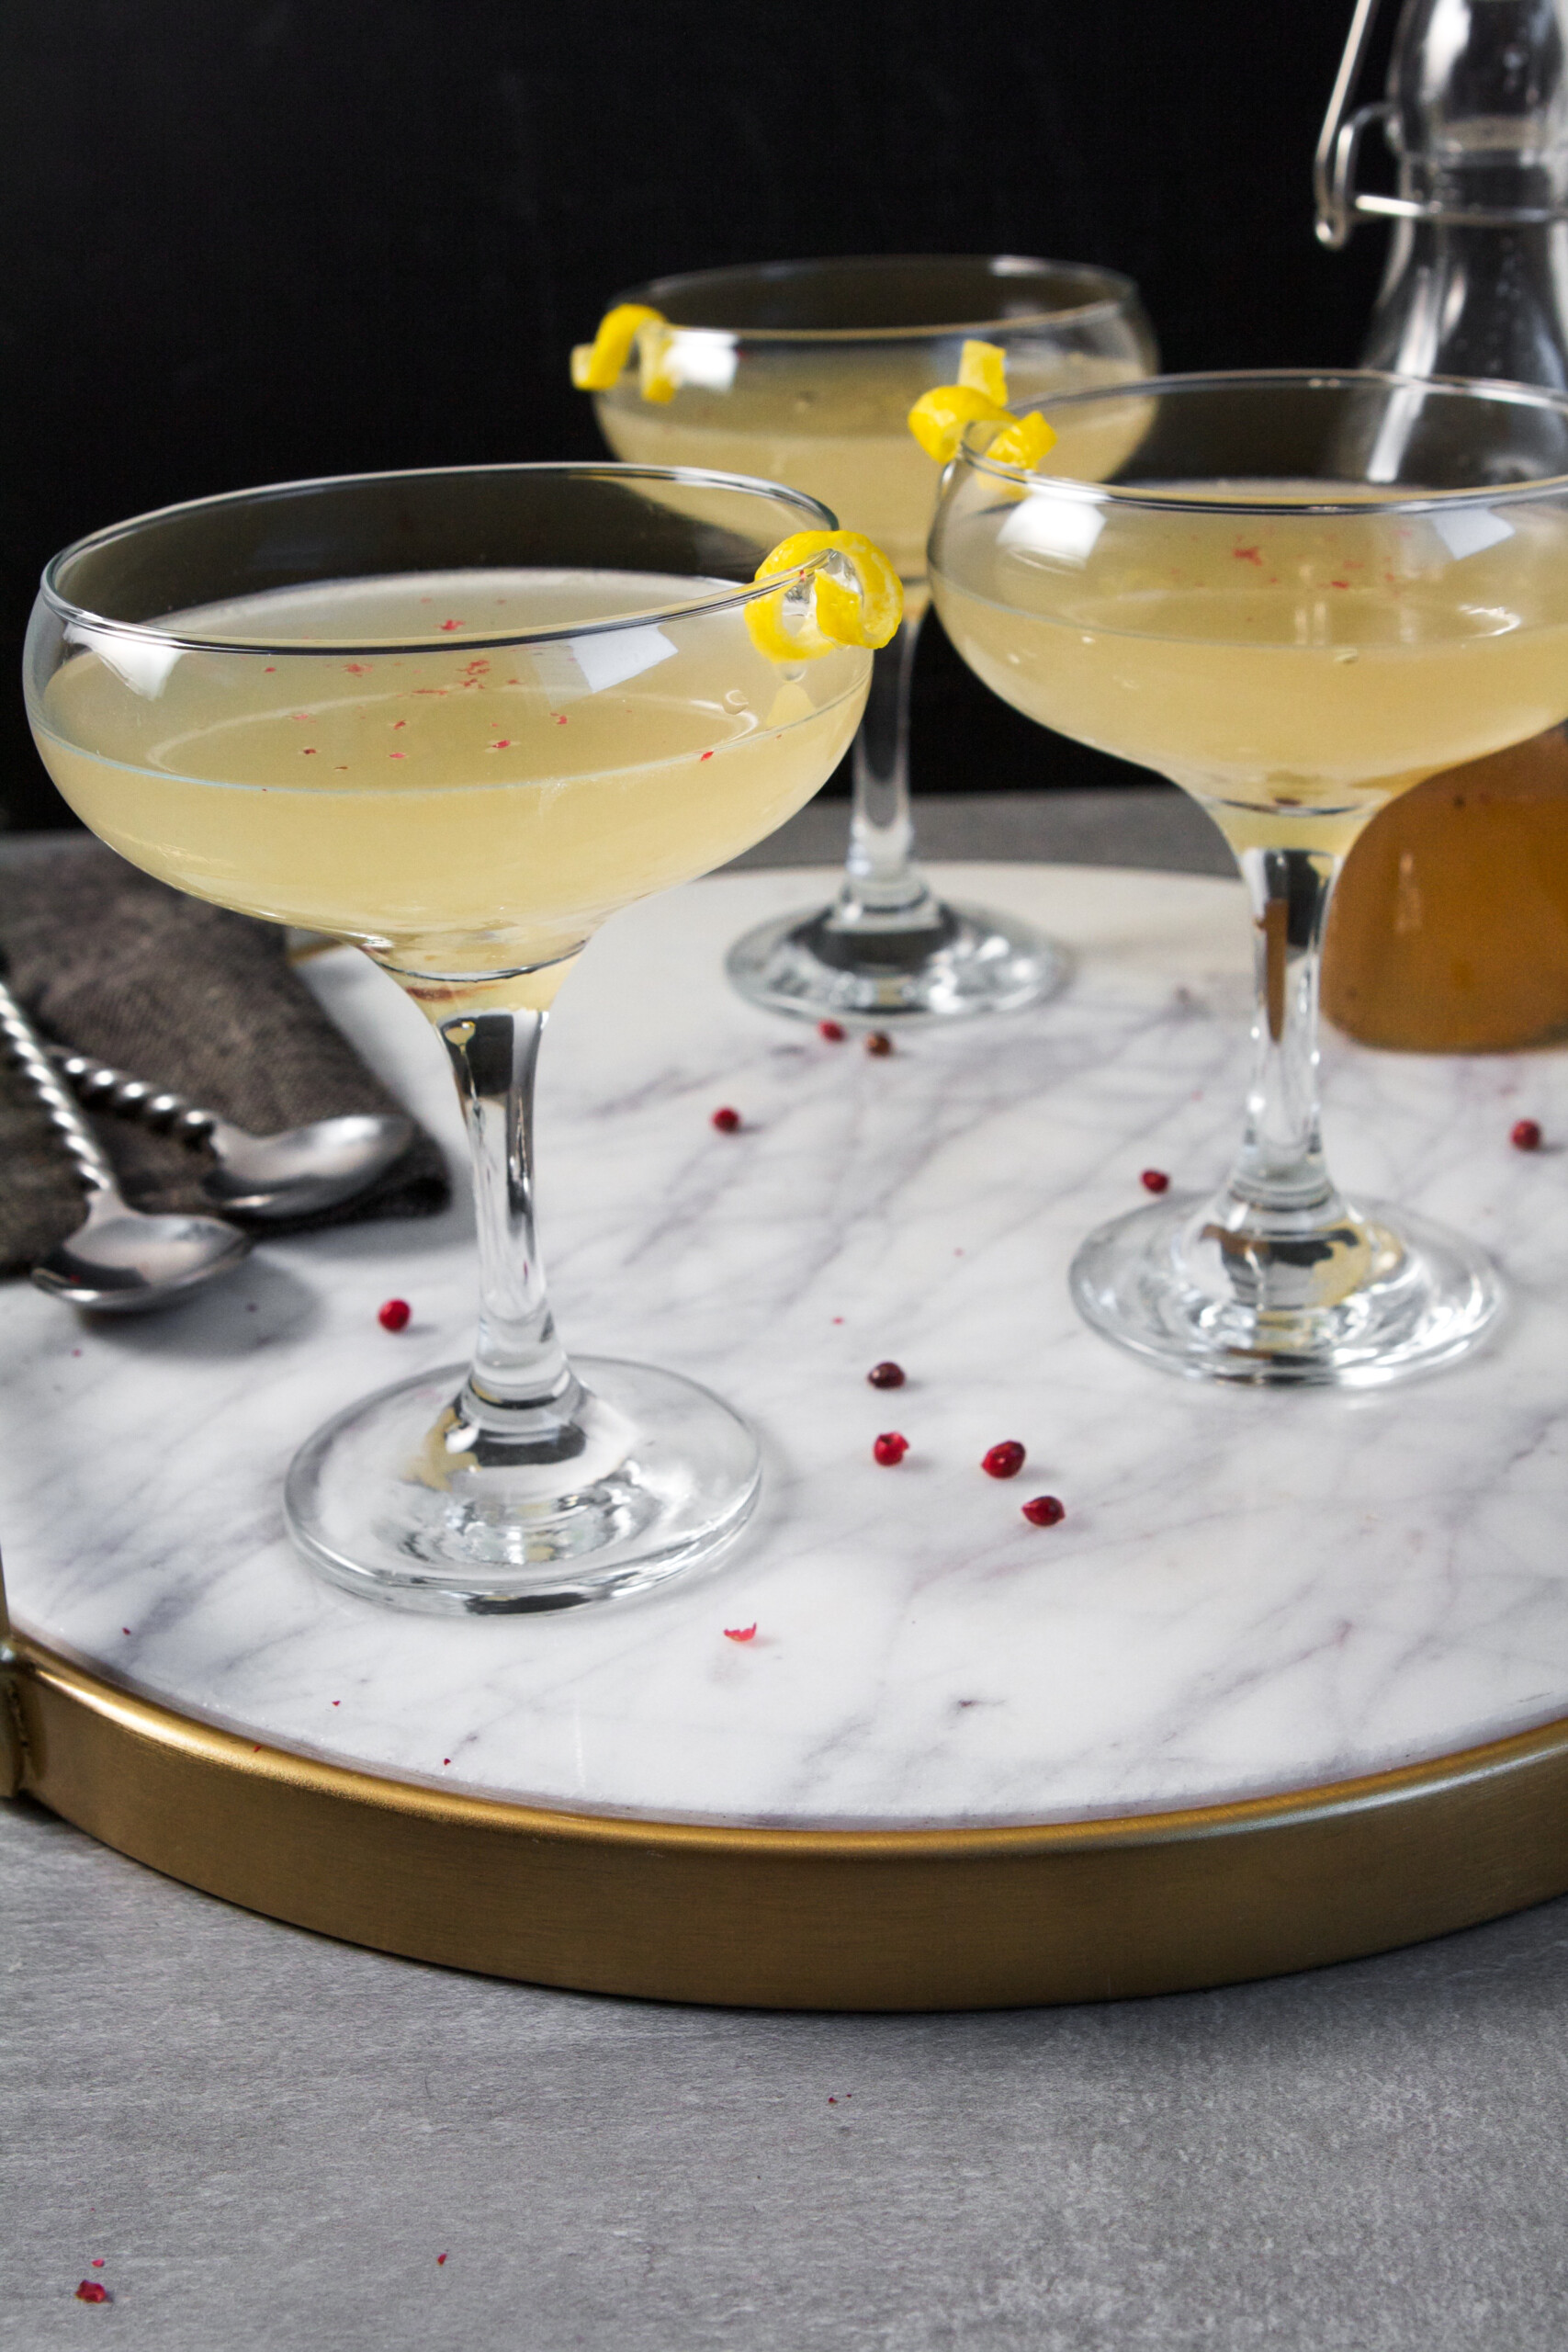 Light and refreshing, this vodka-kombucha cocktail is perfect for any occasion. Made with a pink peppercorn-cardamom syrup and lemon-ginger kombucha, this drink has incredible depth of flavor and festive flare.| Zestful Kitchen